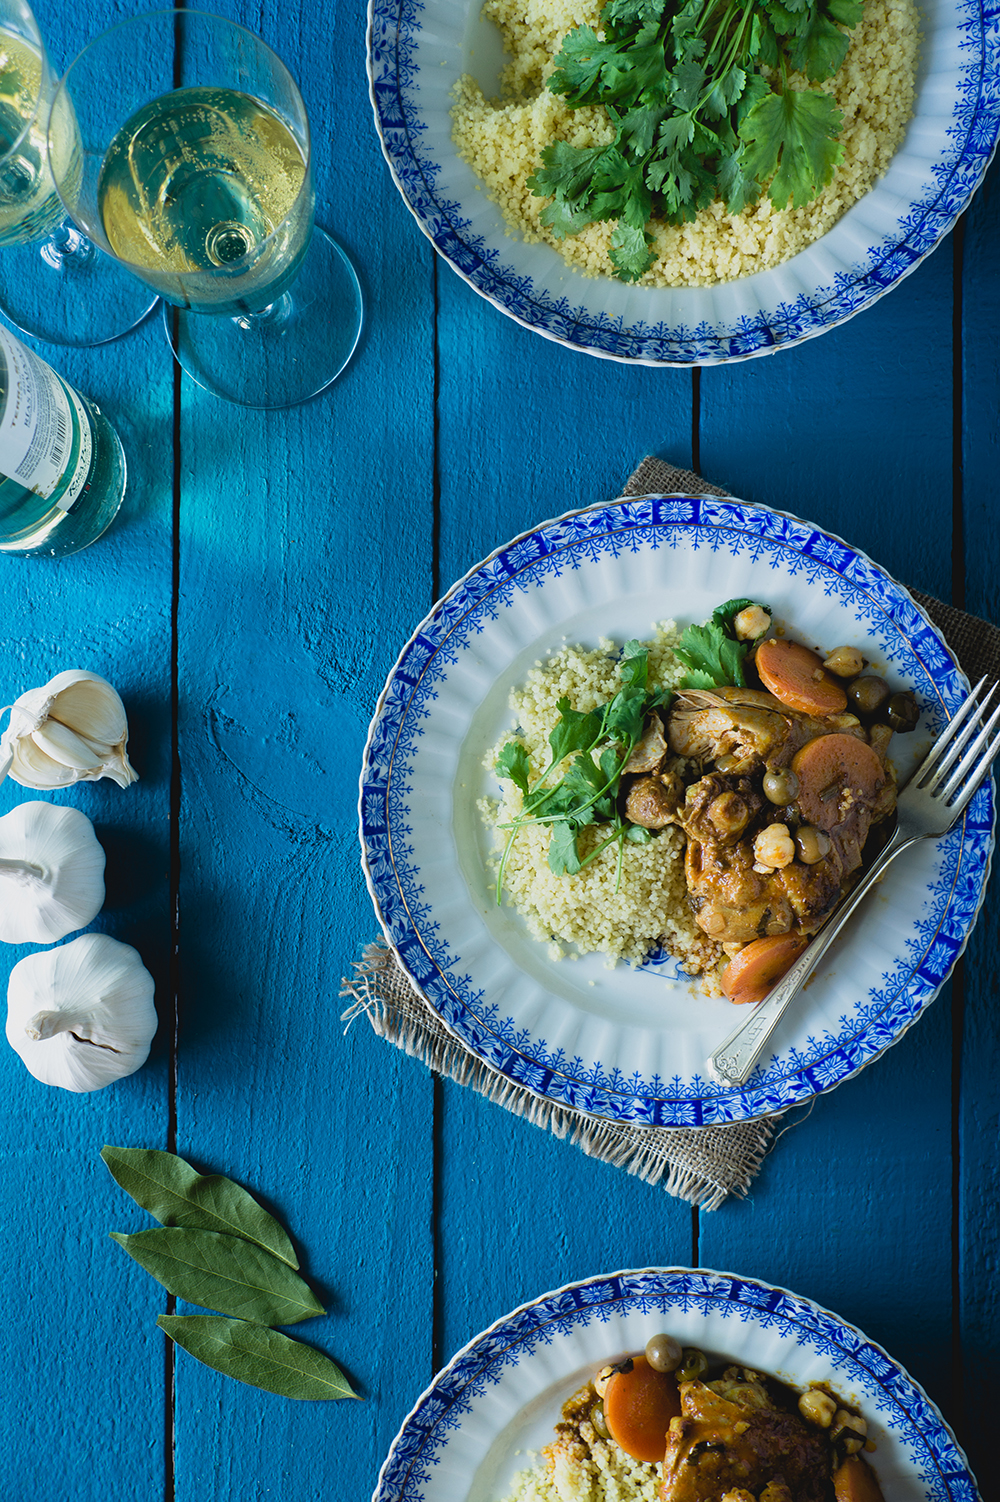 Couscous with chicken stew recipe. Middle Easter cuisine recipe. Puerto Rican foods recipes. This is the best way to eat couscous.